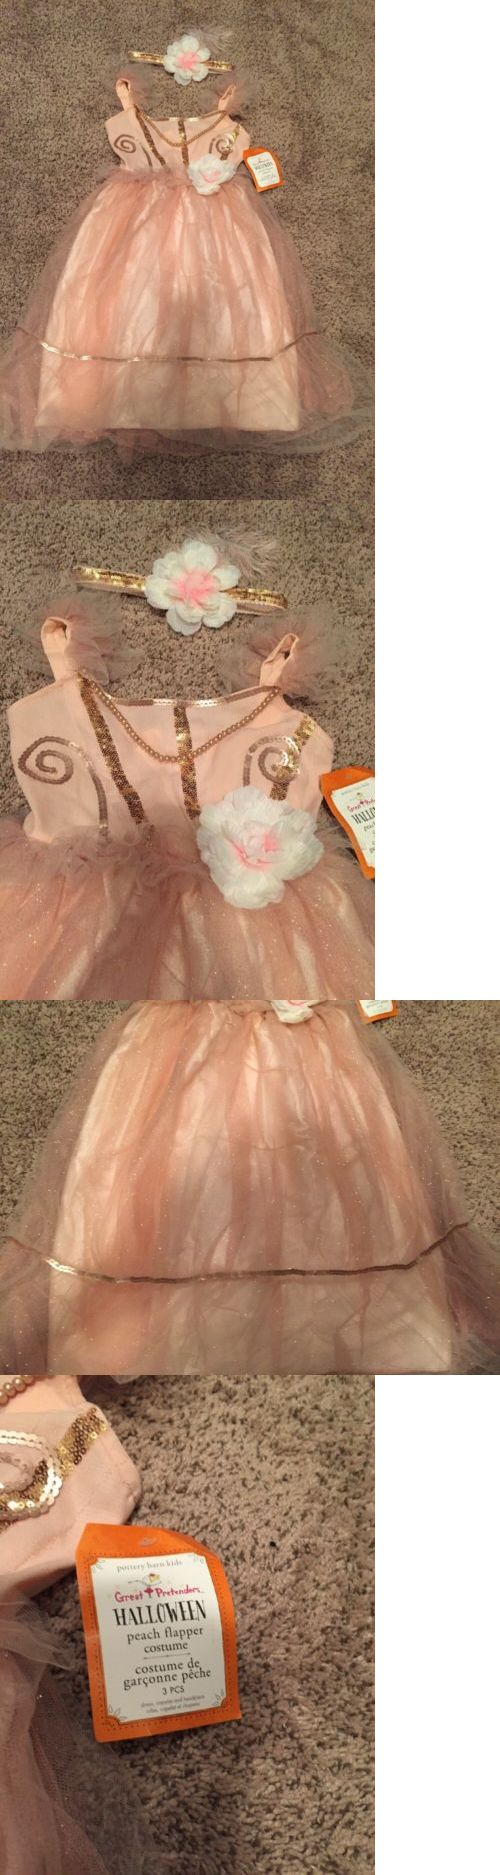 Infants and Toddlers 90635: New Pottery Barn Kids Halloween Peach Flapper Girl Costume Dress 4-6 -> BUY IT NOW ONLY: $33.99 on eBay!